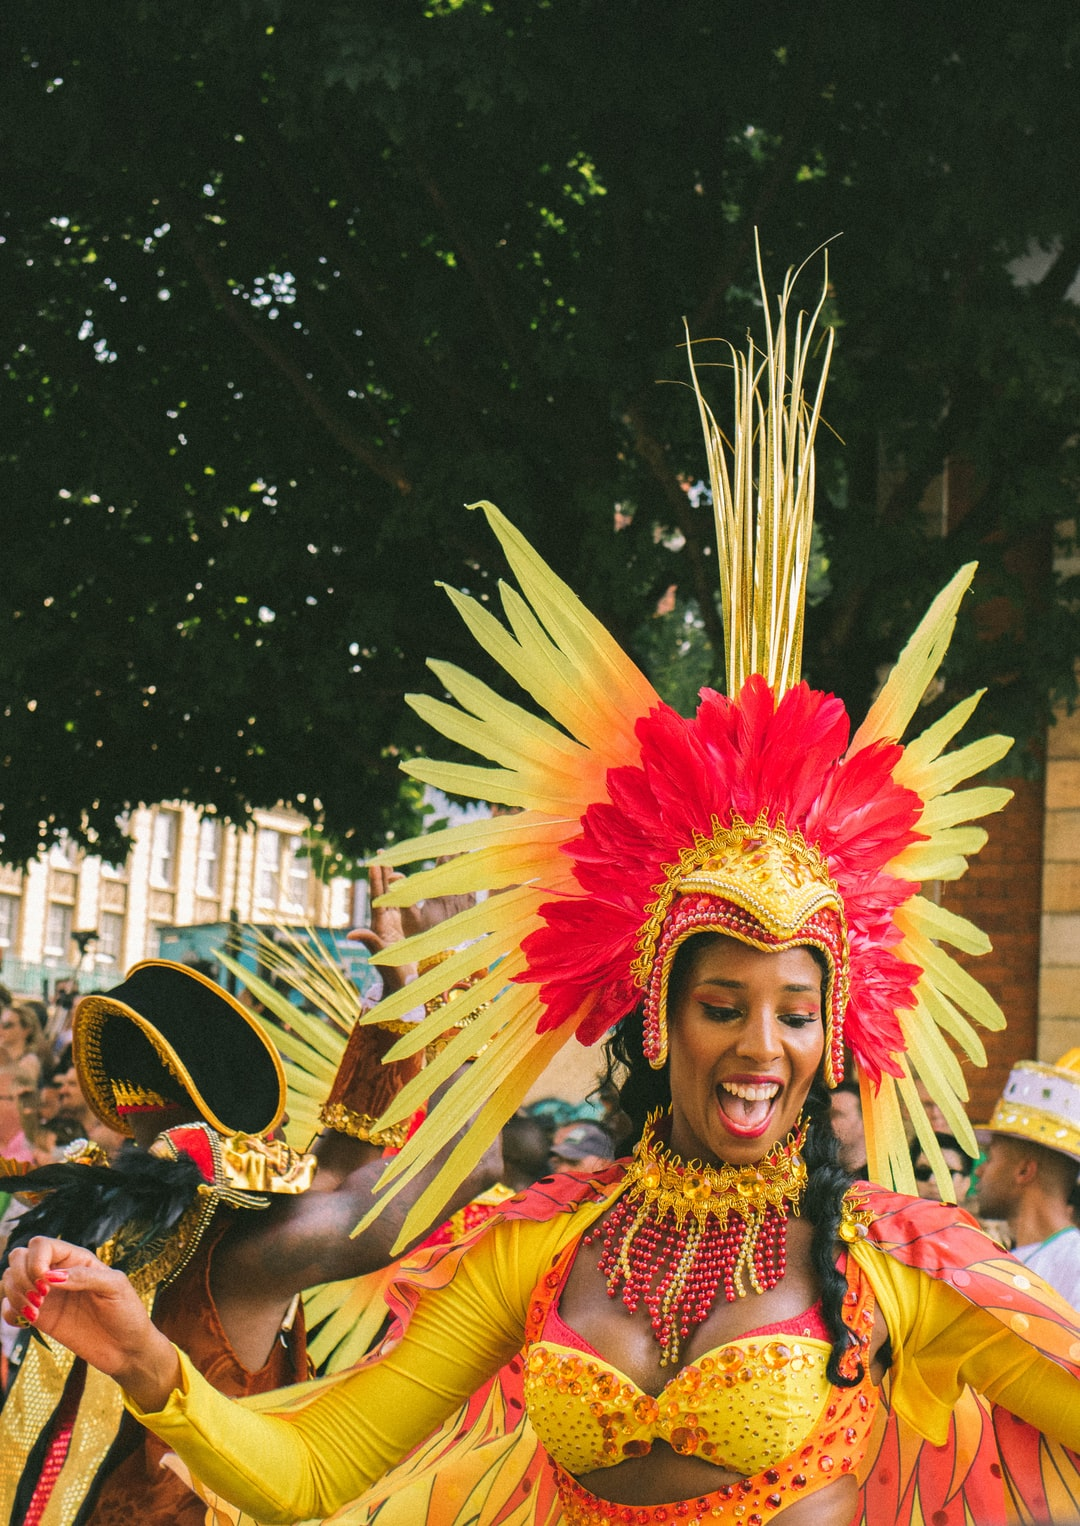 4 major places to visit during the Carnival in Goa